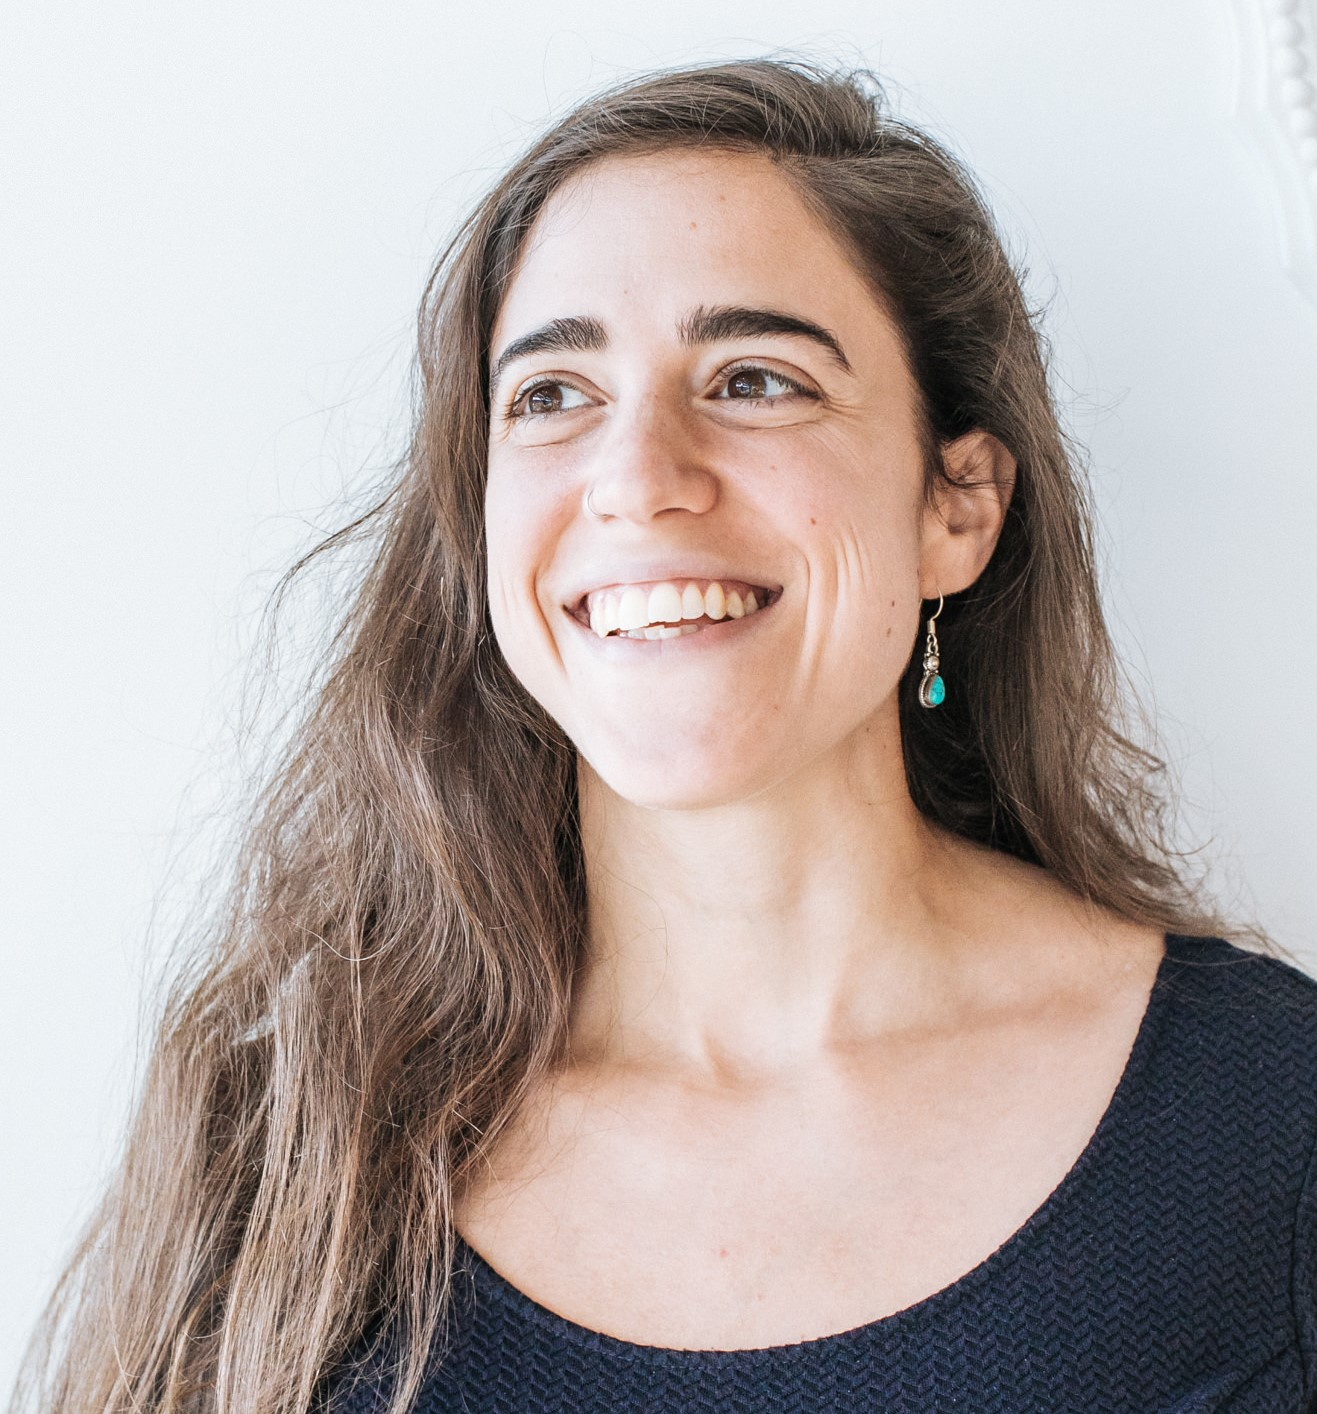 Hi, I'm Netta! - I'm a born and raised New Yorker, currently living in Tel Aviv. I am strategic, creative, and endlessly curious -- with an expertise in product, analytics, and a passion for digital health, women's rights, and travel.